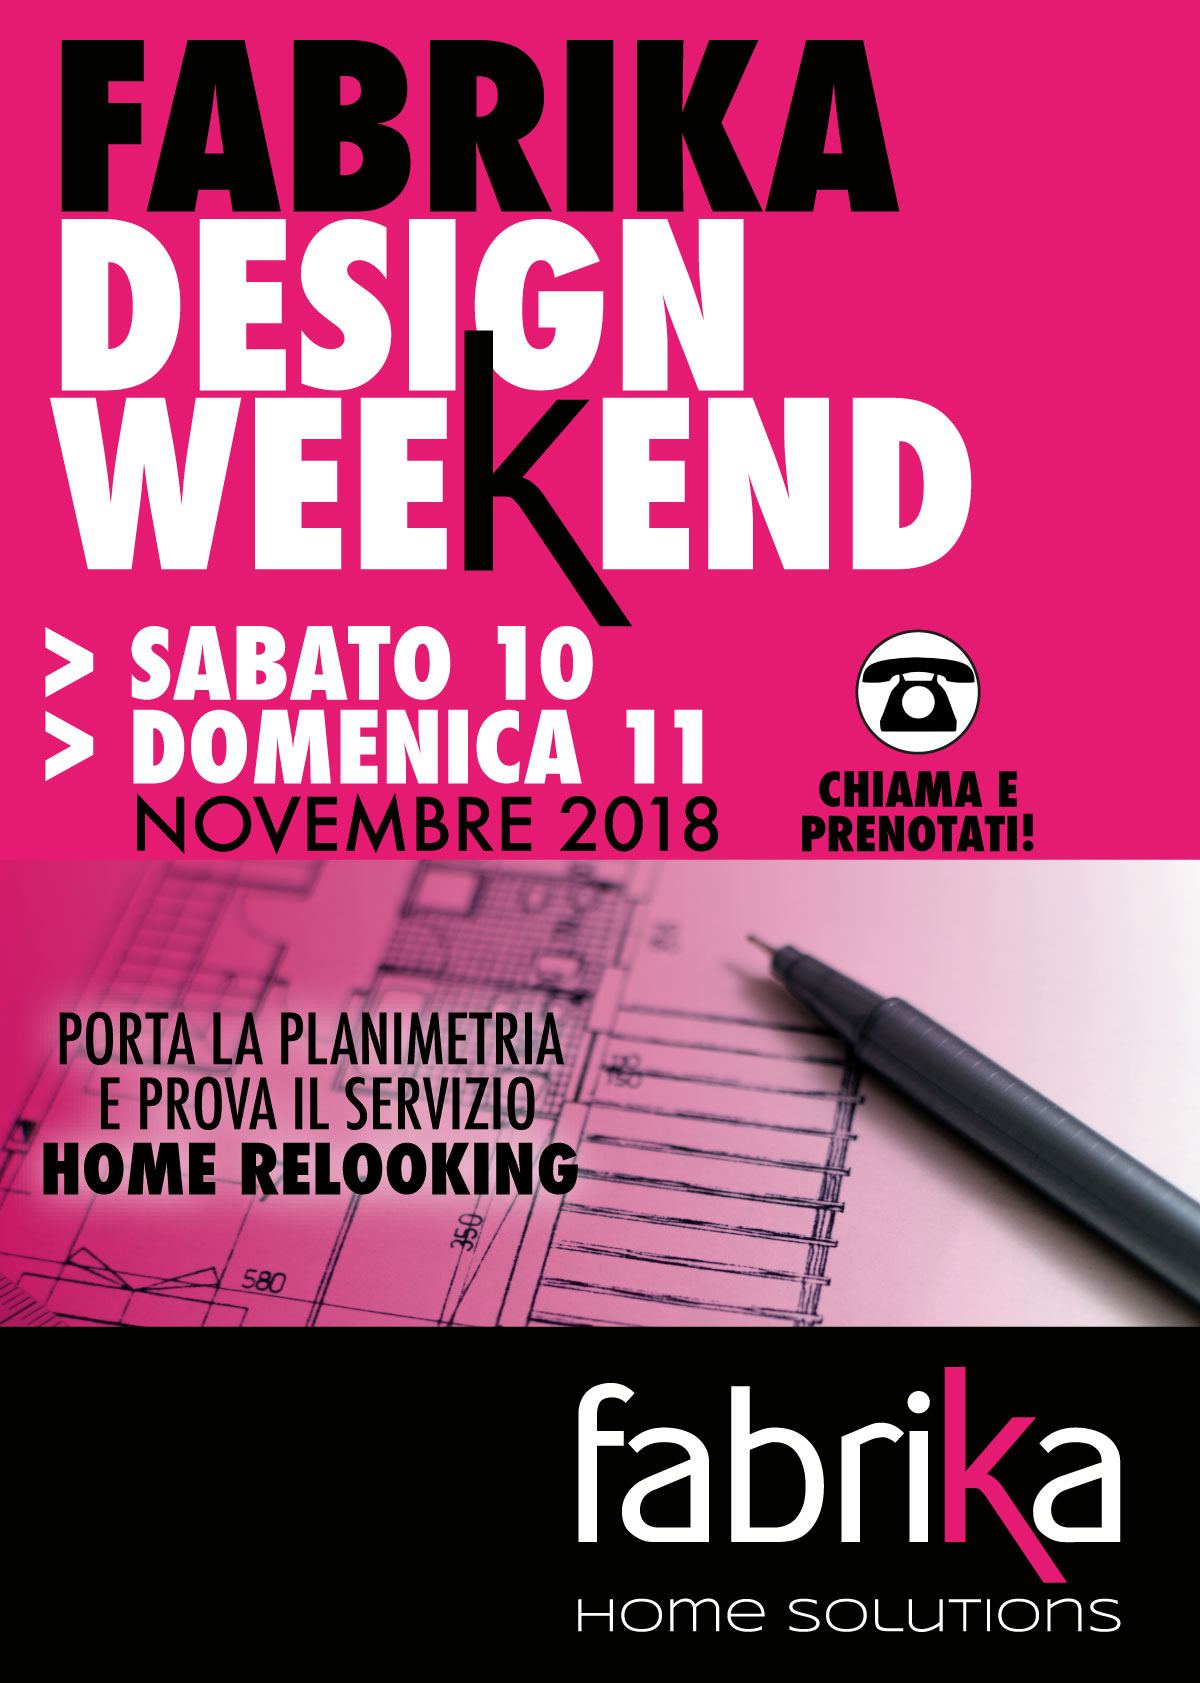 FAB-design-weekend-2018-100x140